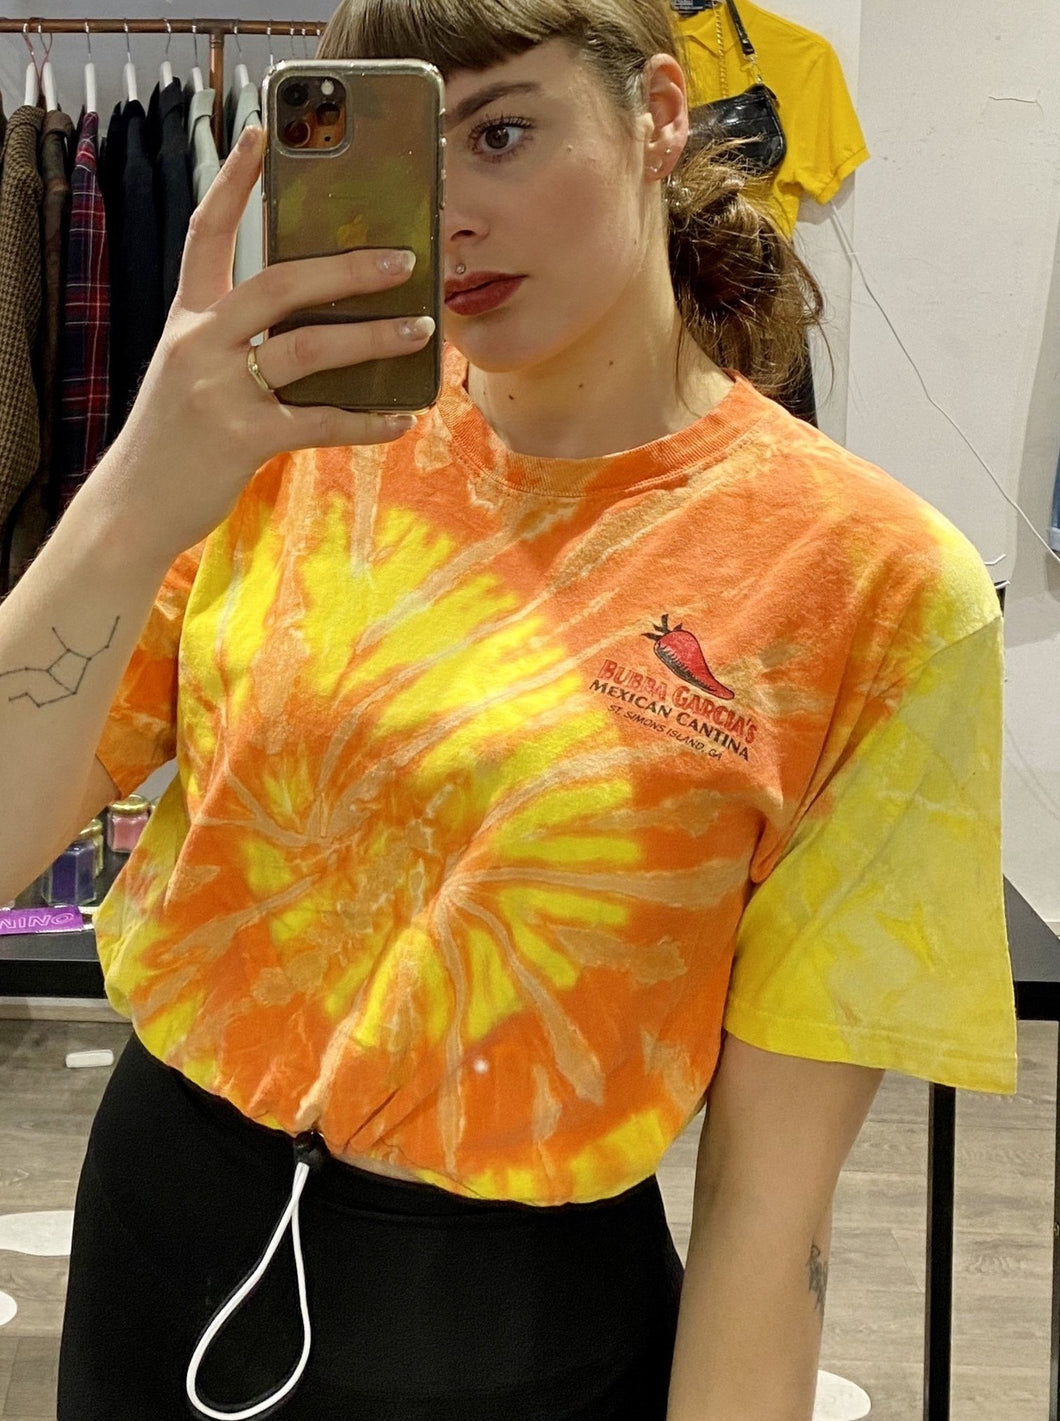 Vintage Reworked Tie Dye Crop Top T-Shirt in Orange and Yellow with Mexican Print in S/M